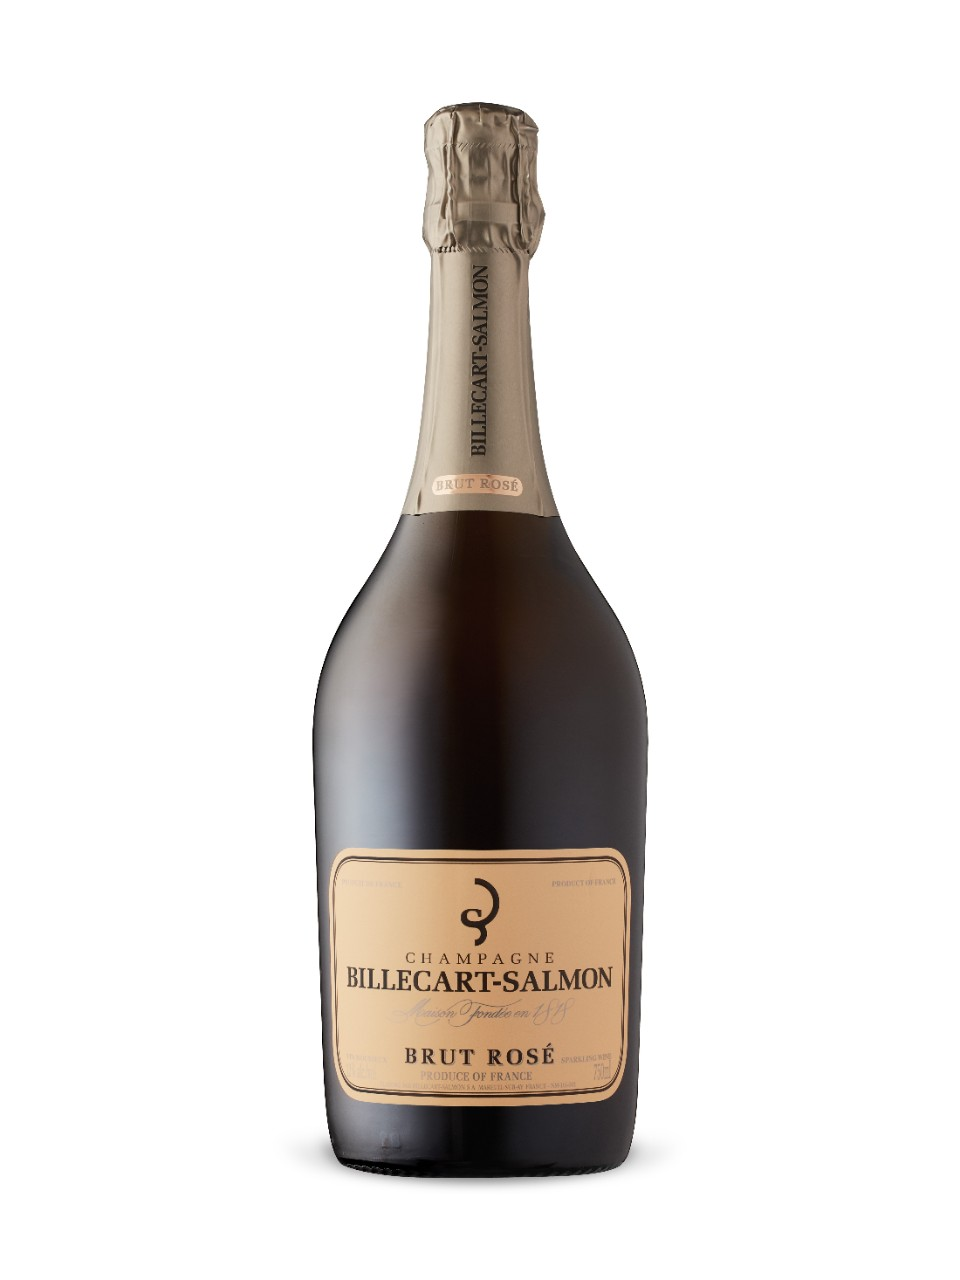 Billecart-Salmon Brut Rosé Champagne from LCBO